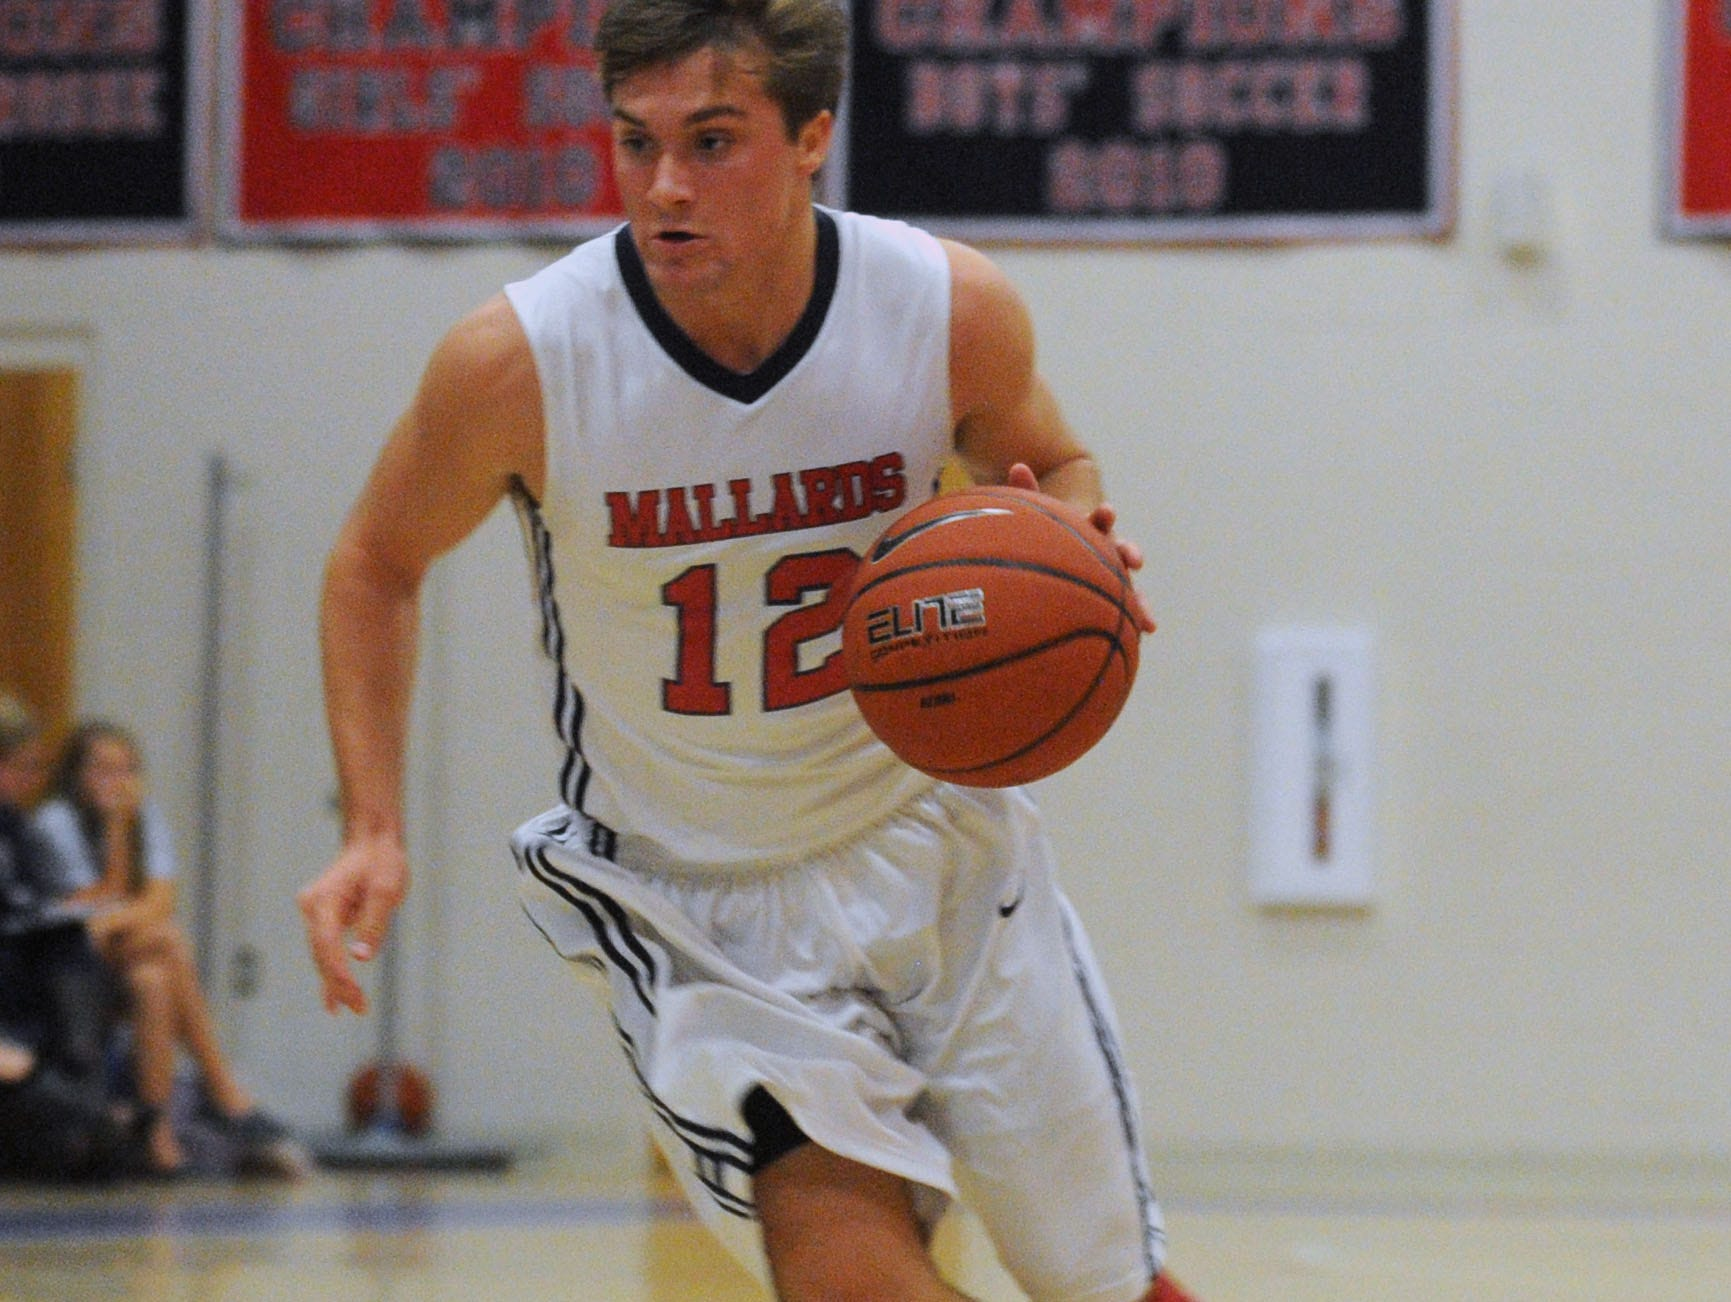 Worcester Prep's Owen Nally drives the lane against Broadwater Academy on Monday. The Mallards lost 61-43.